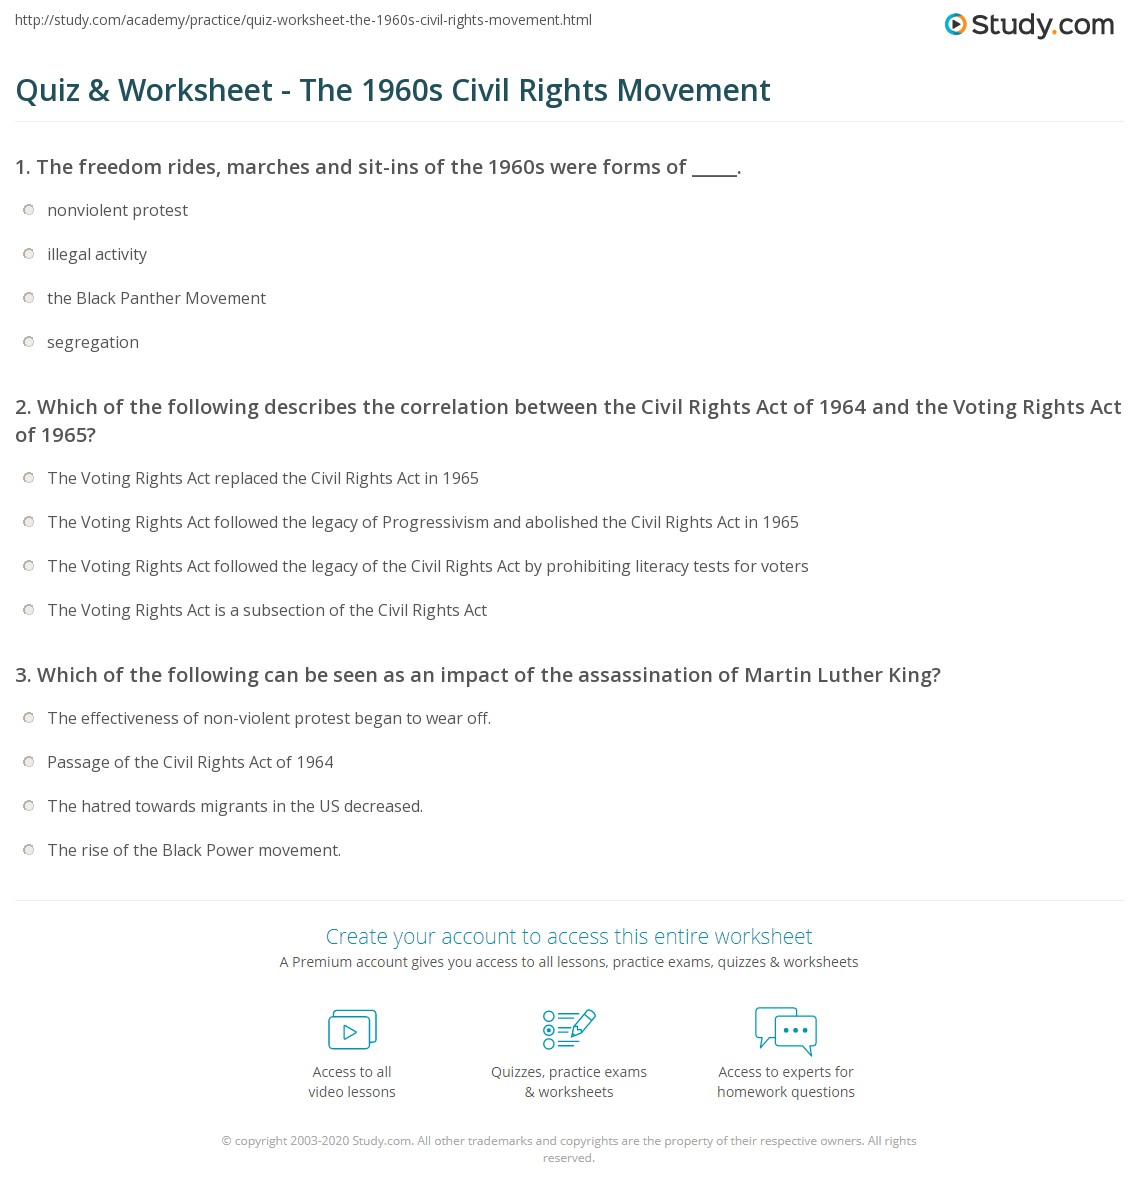 Quiz & Worksheet - The 1960s Civil Rights Movement | Study.com